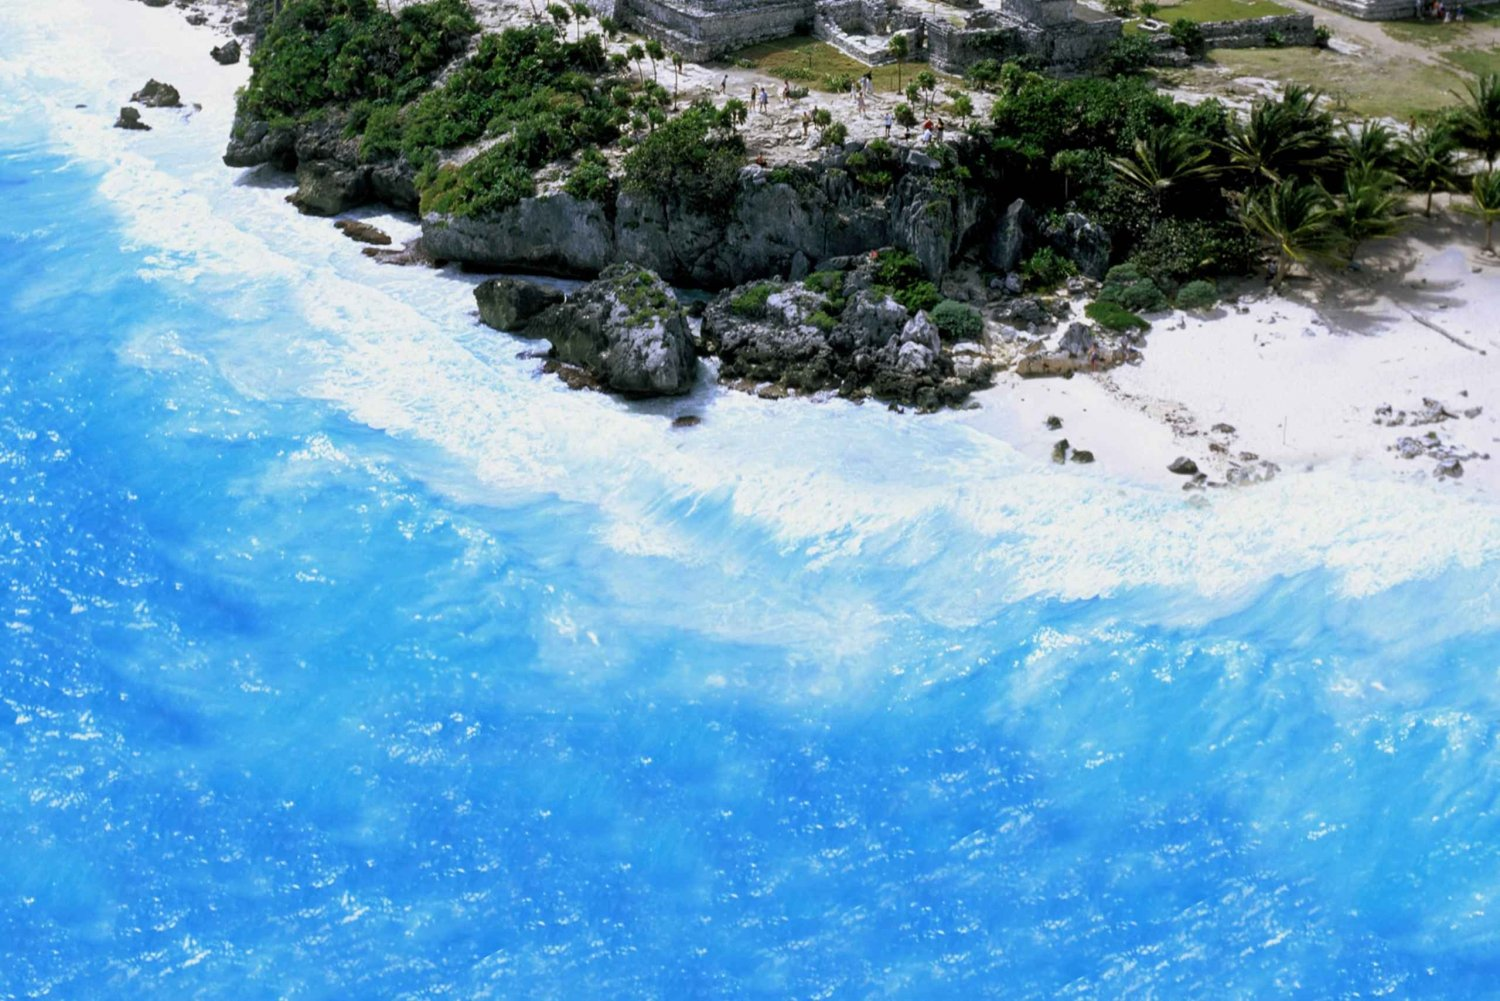 From Riviera Maya: Day Tour of Tulum & Visit to Xel-Há Park